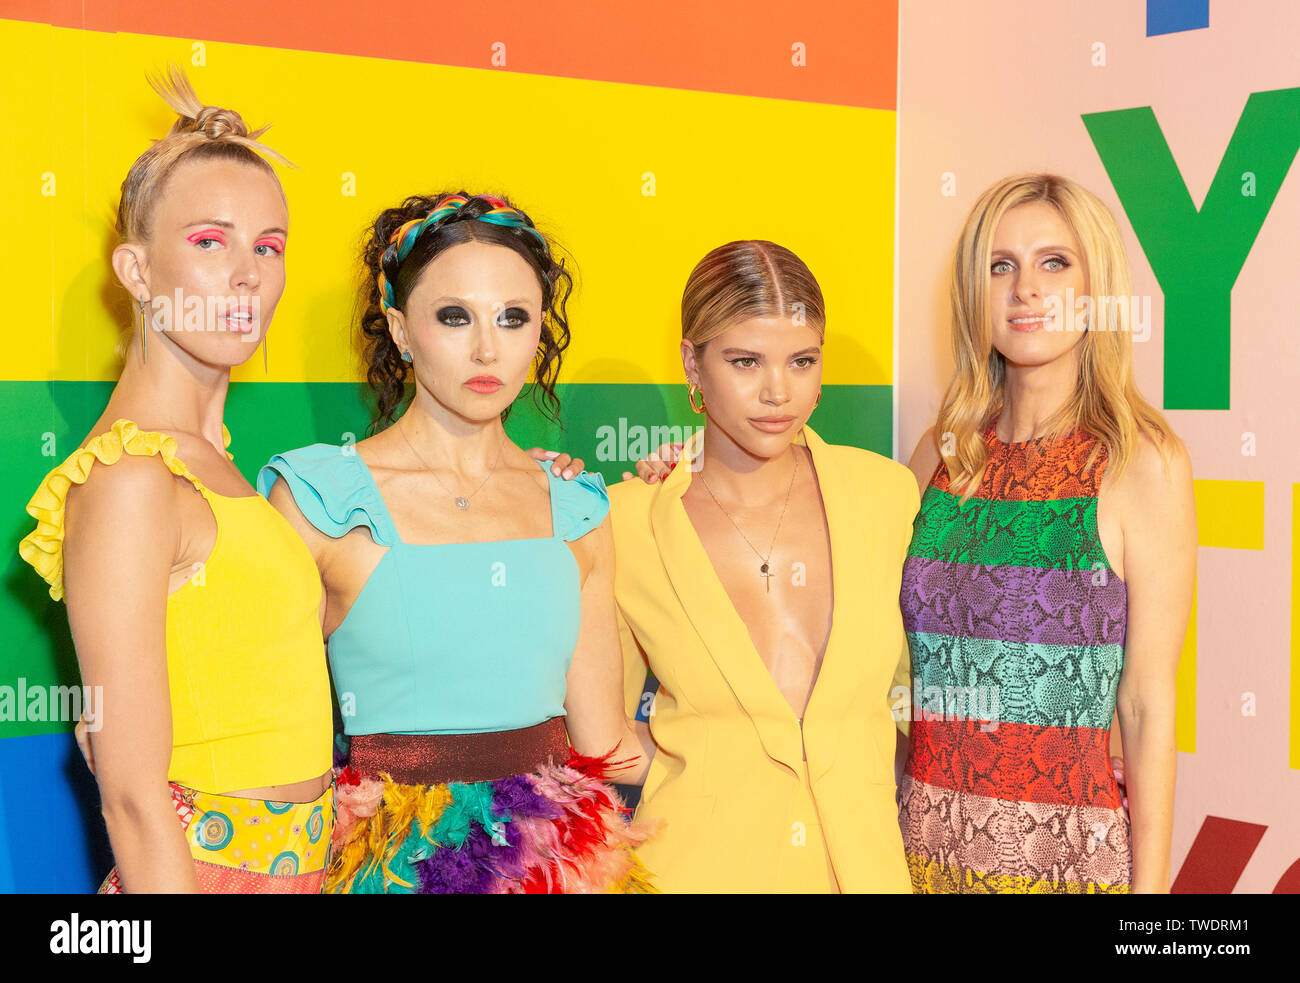 New York, United States. 18th June, 2019. Tessa Hilton, Stacey Bendet, Sofia Richie, Nicky Hilton Rothschild attend the Summer Kickoff Party for WorldPride hosted by Alice   Olivia by Stacey Bendet and the Trevor Project at Industria Studio Credit: Lev Radin/Pacific Press/Alamy Live News - Stock Image